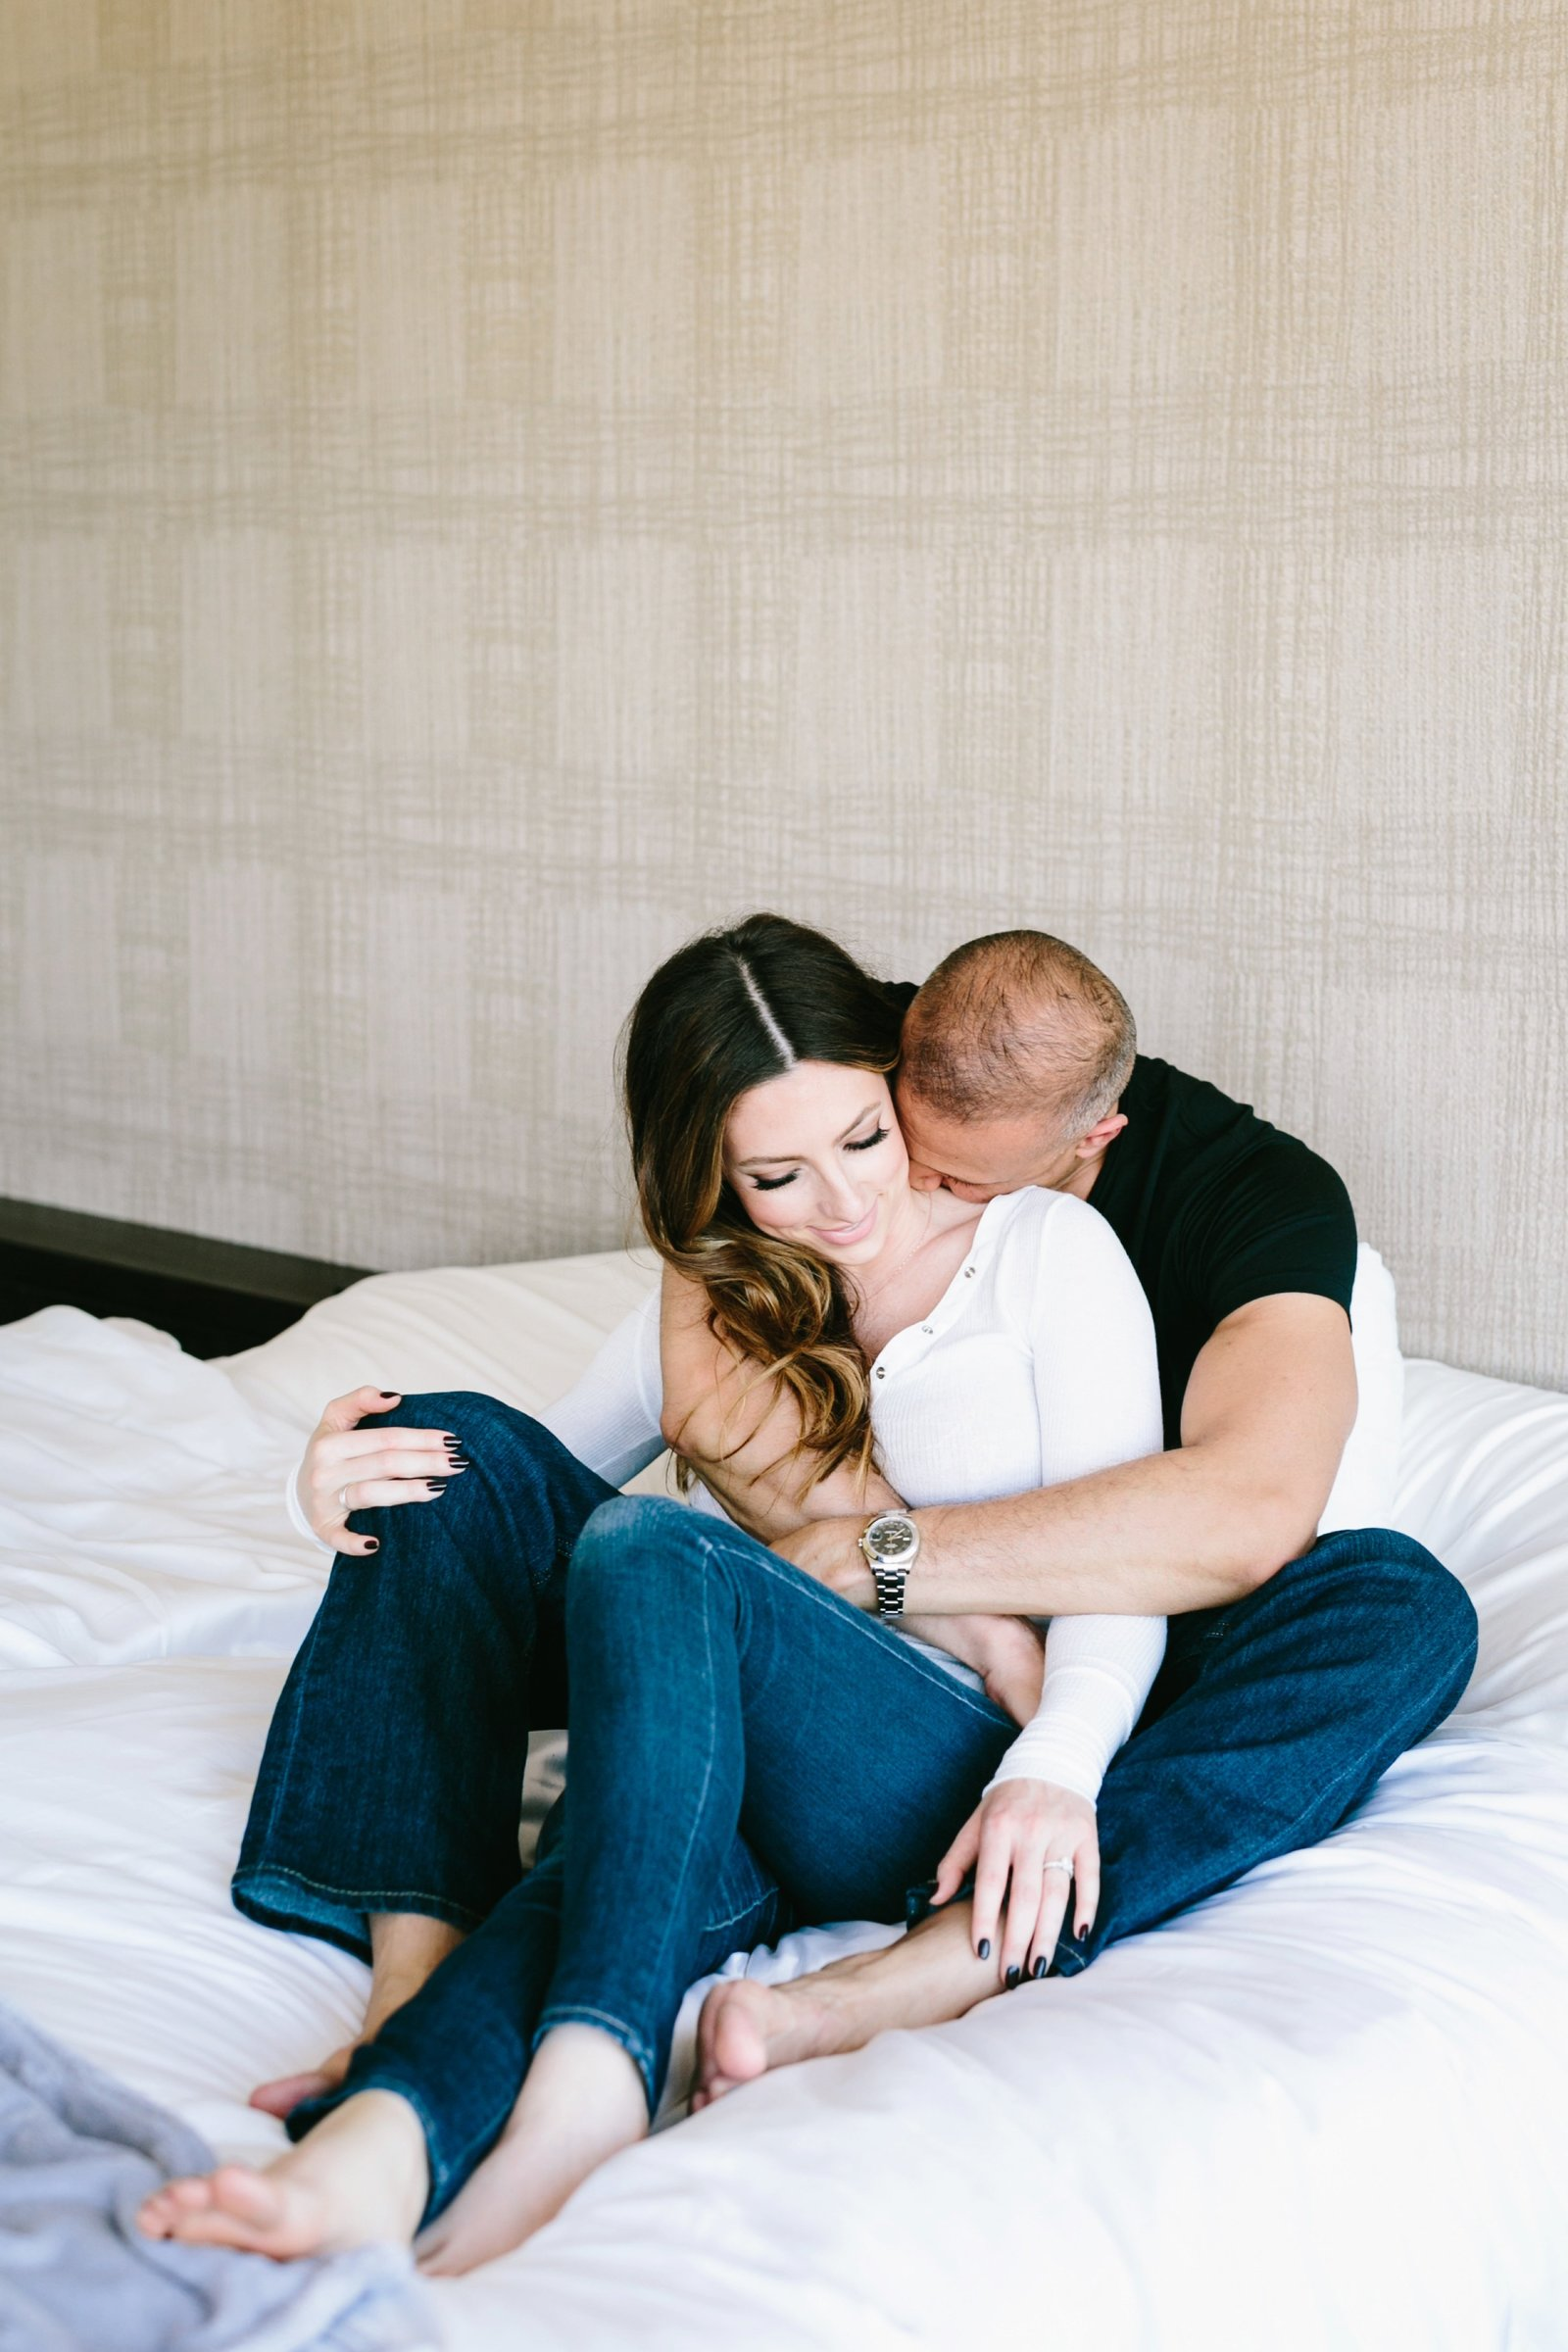 Engagement Photos-Jodee Debes Photography-141